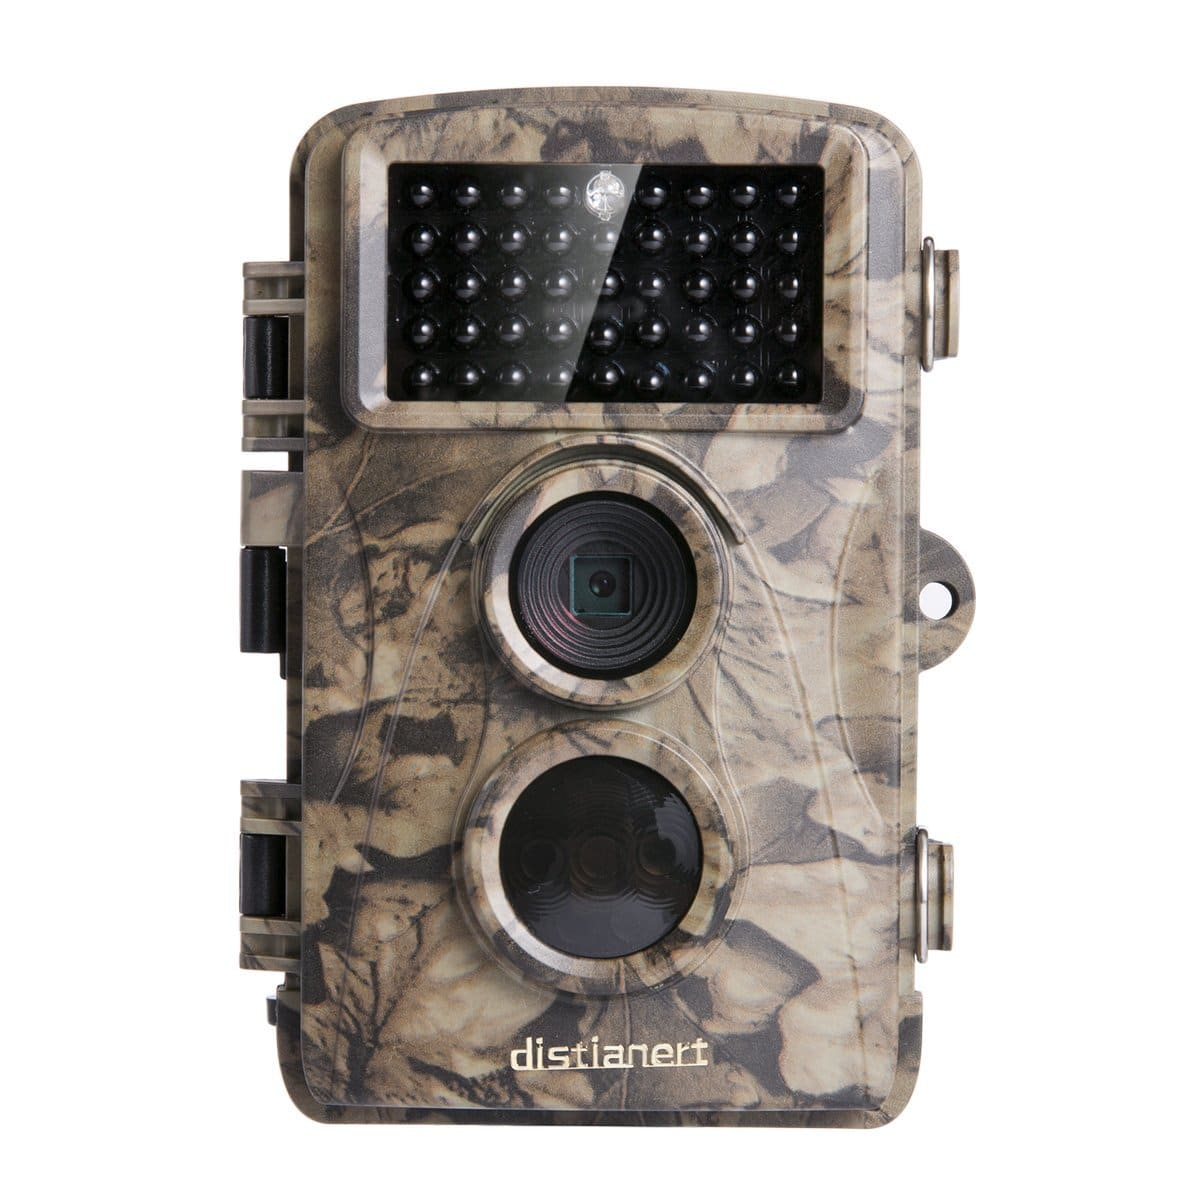 [Upgraded] 12MP 720P Waterproof IP56 Infrared Trail Game Camera with 44pcs 940nm IR LED $34.99 @Amazon